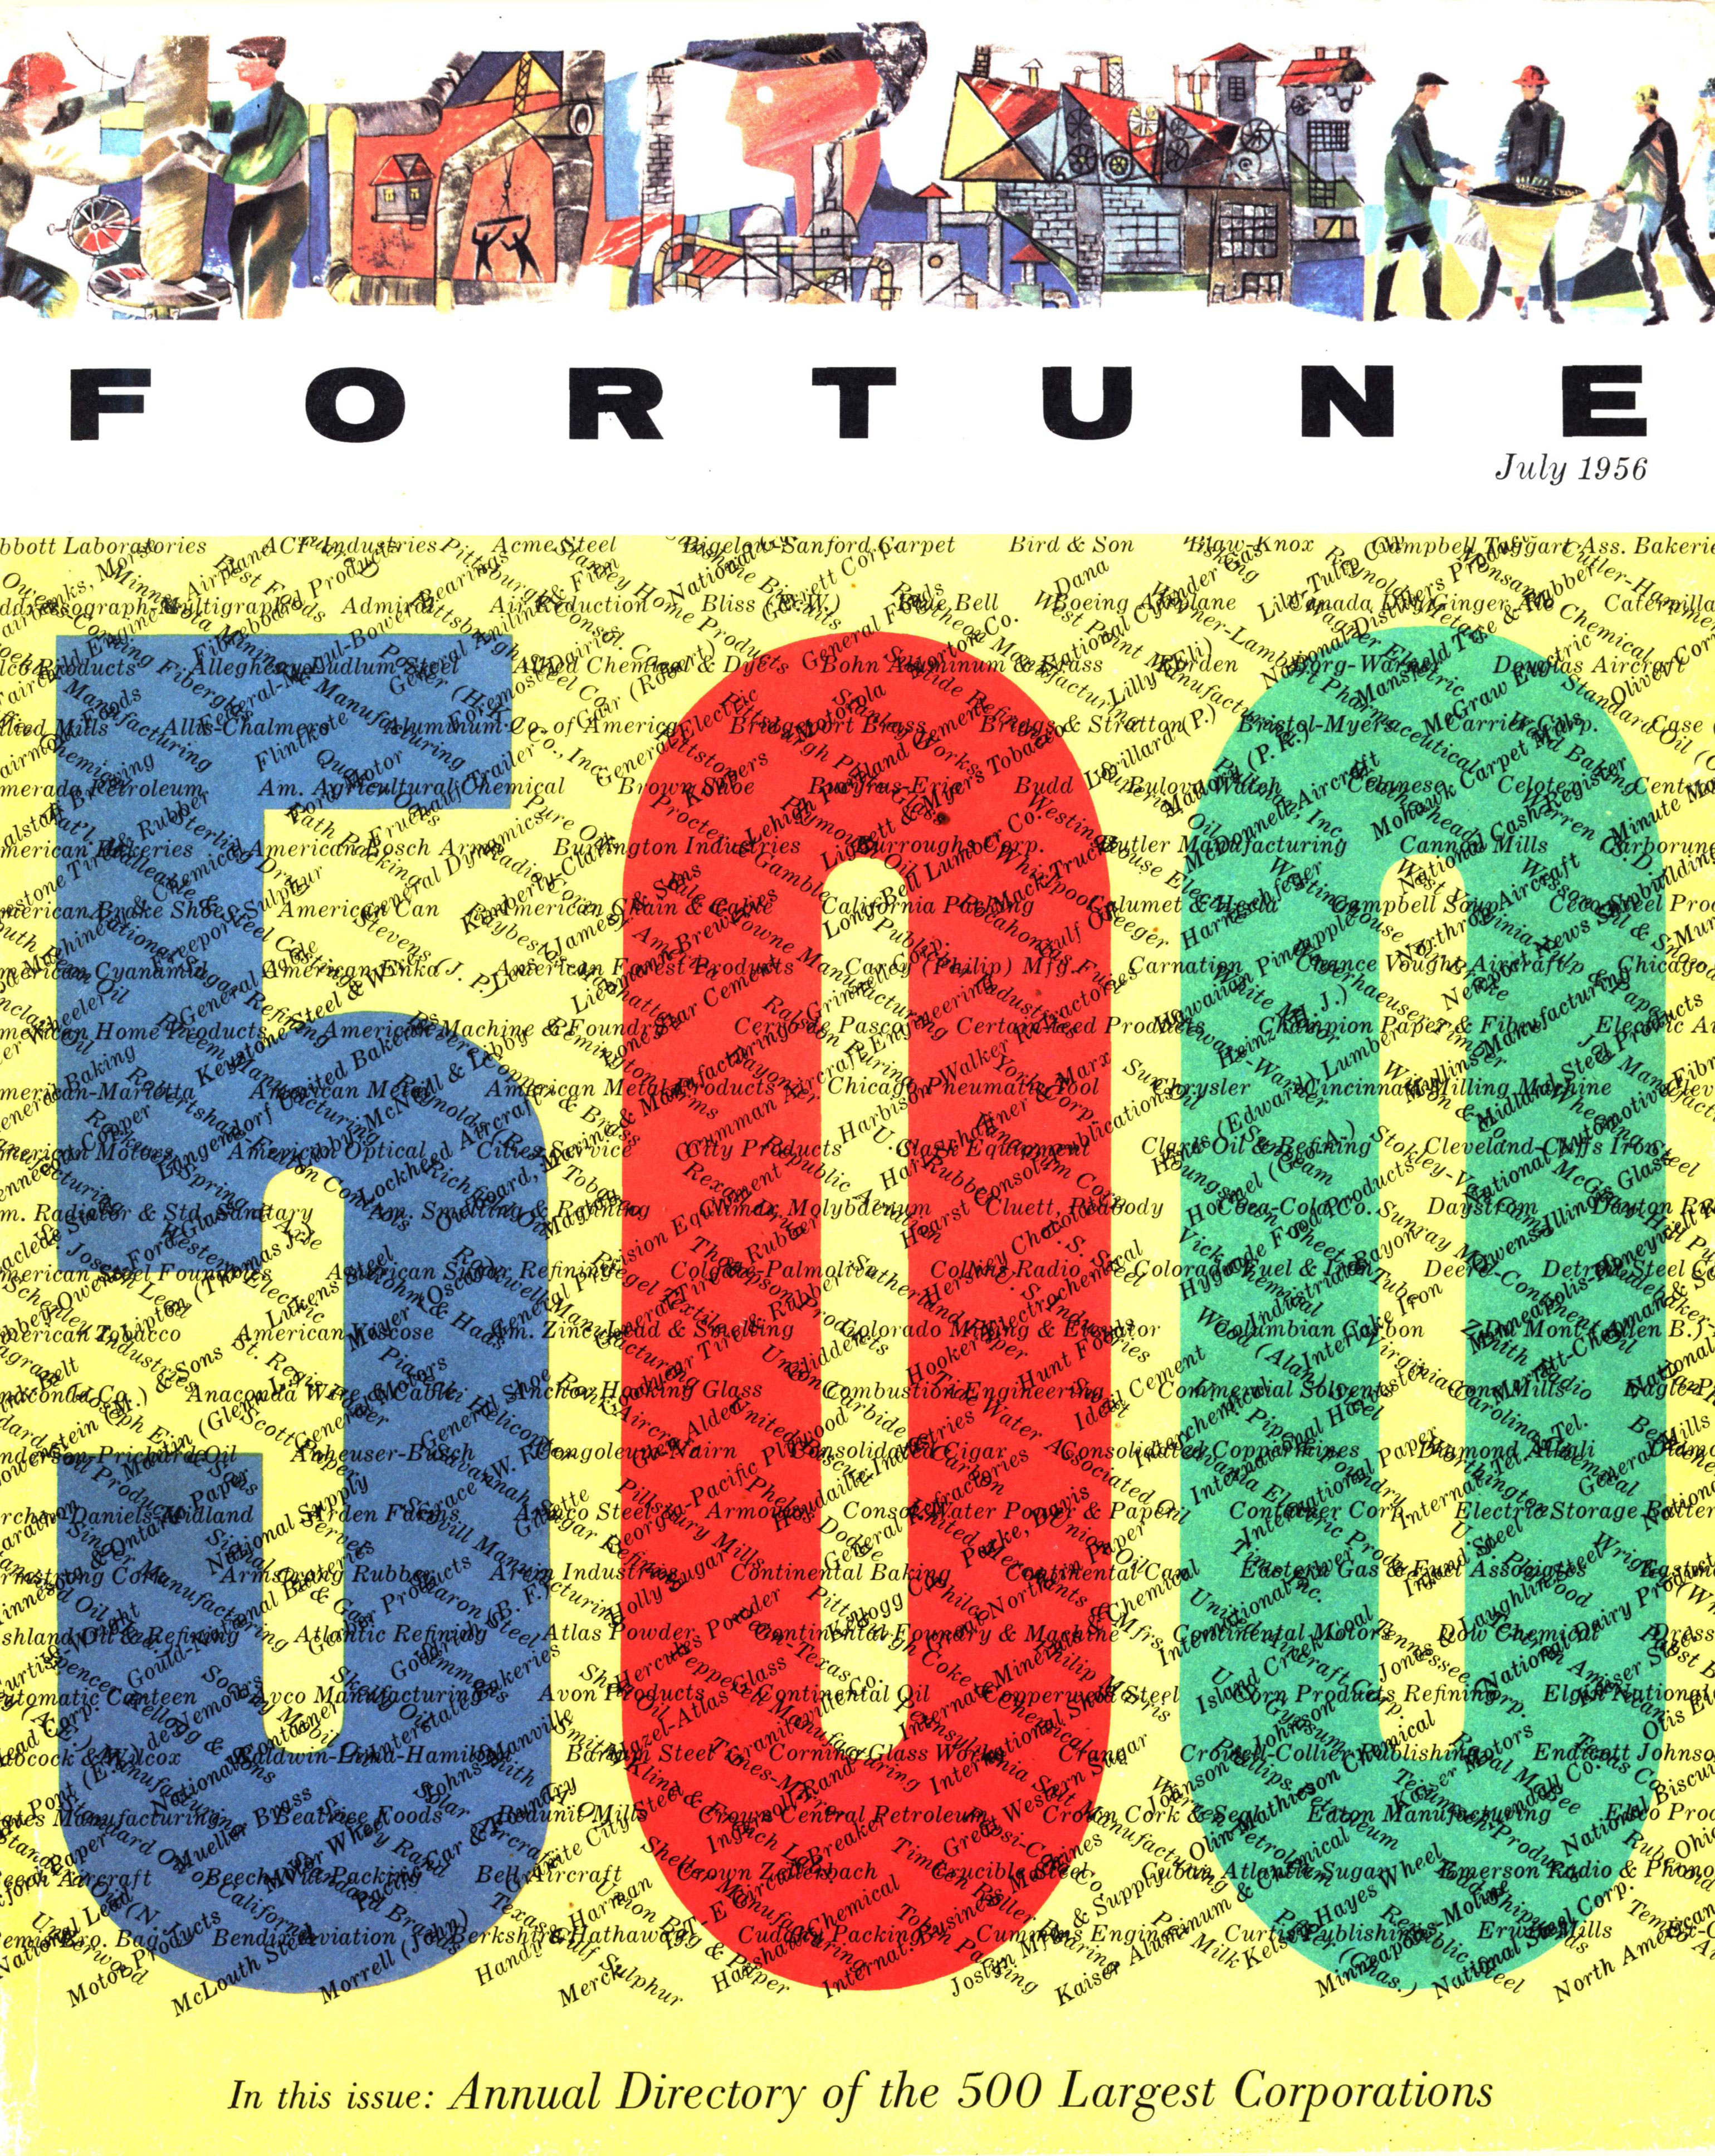 The first Fortune 500 cover in July of 1956.